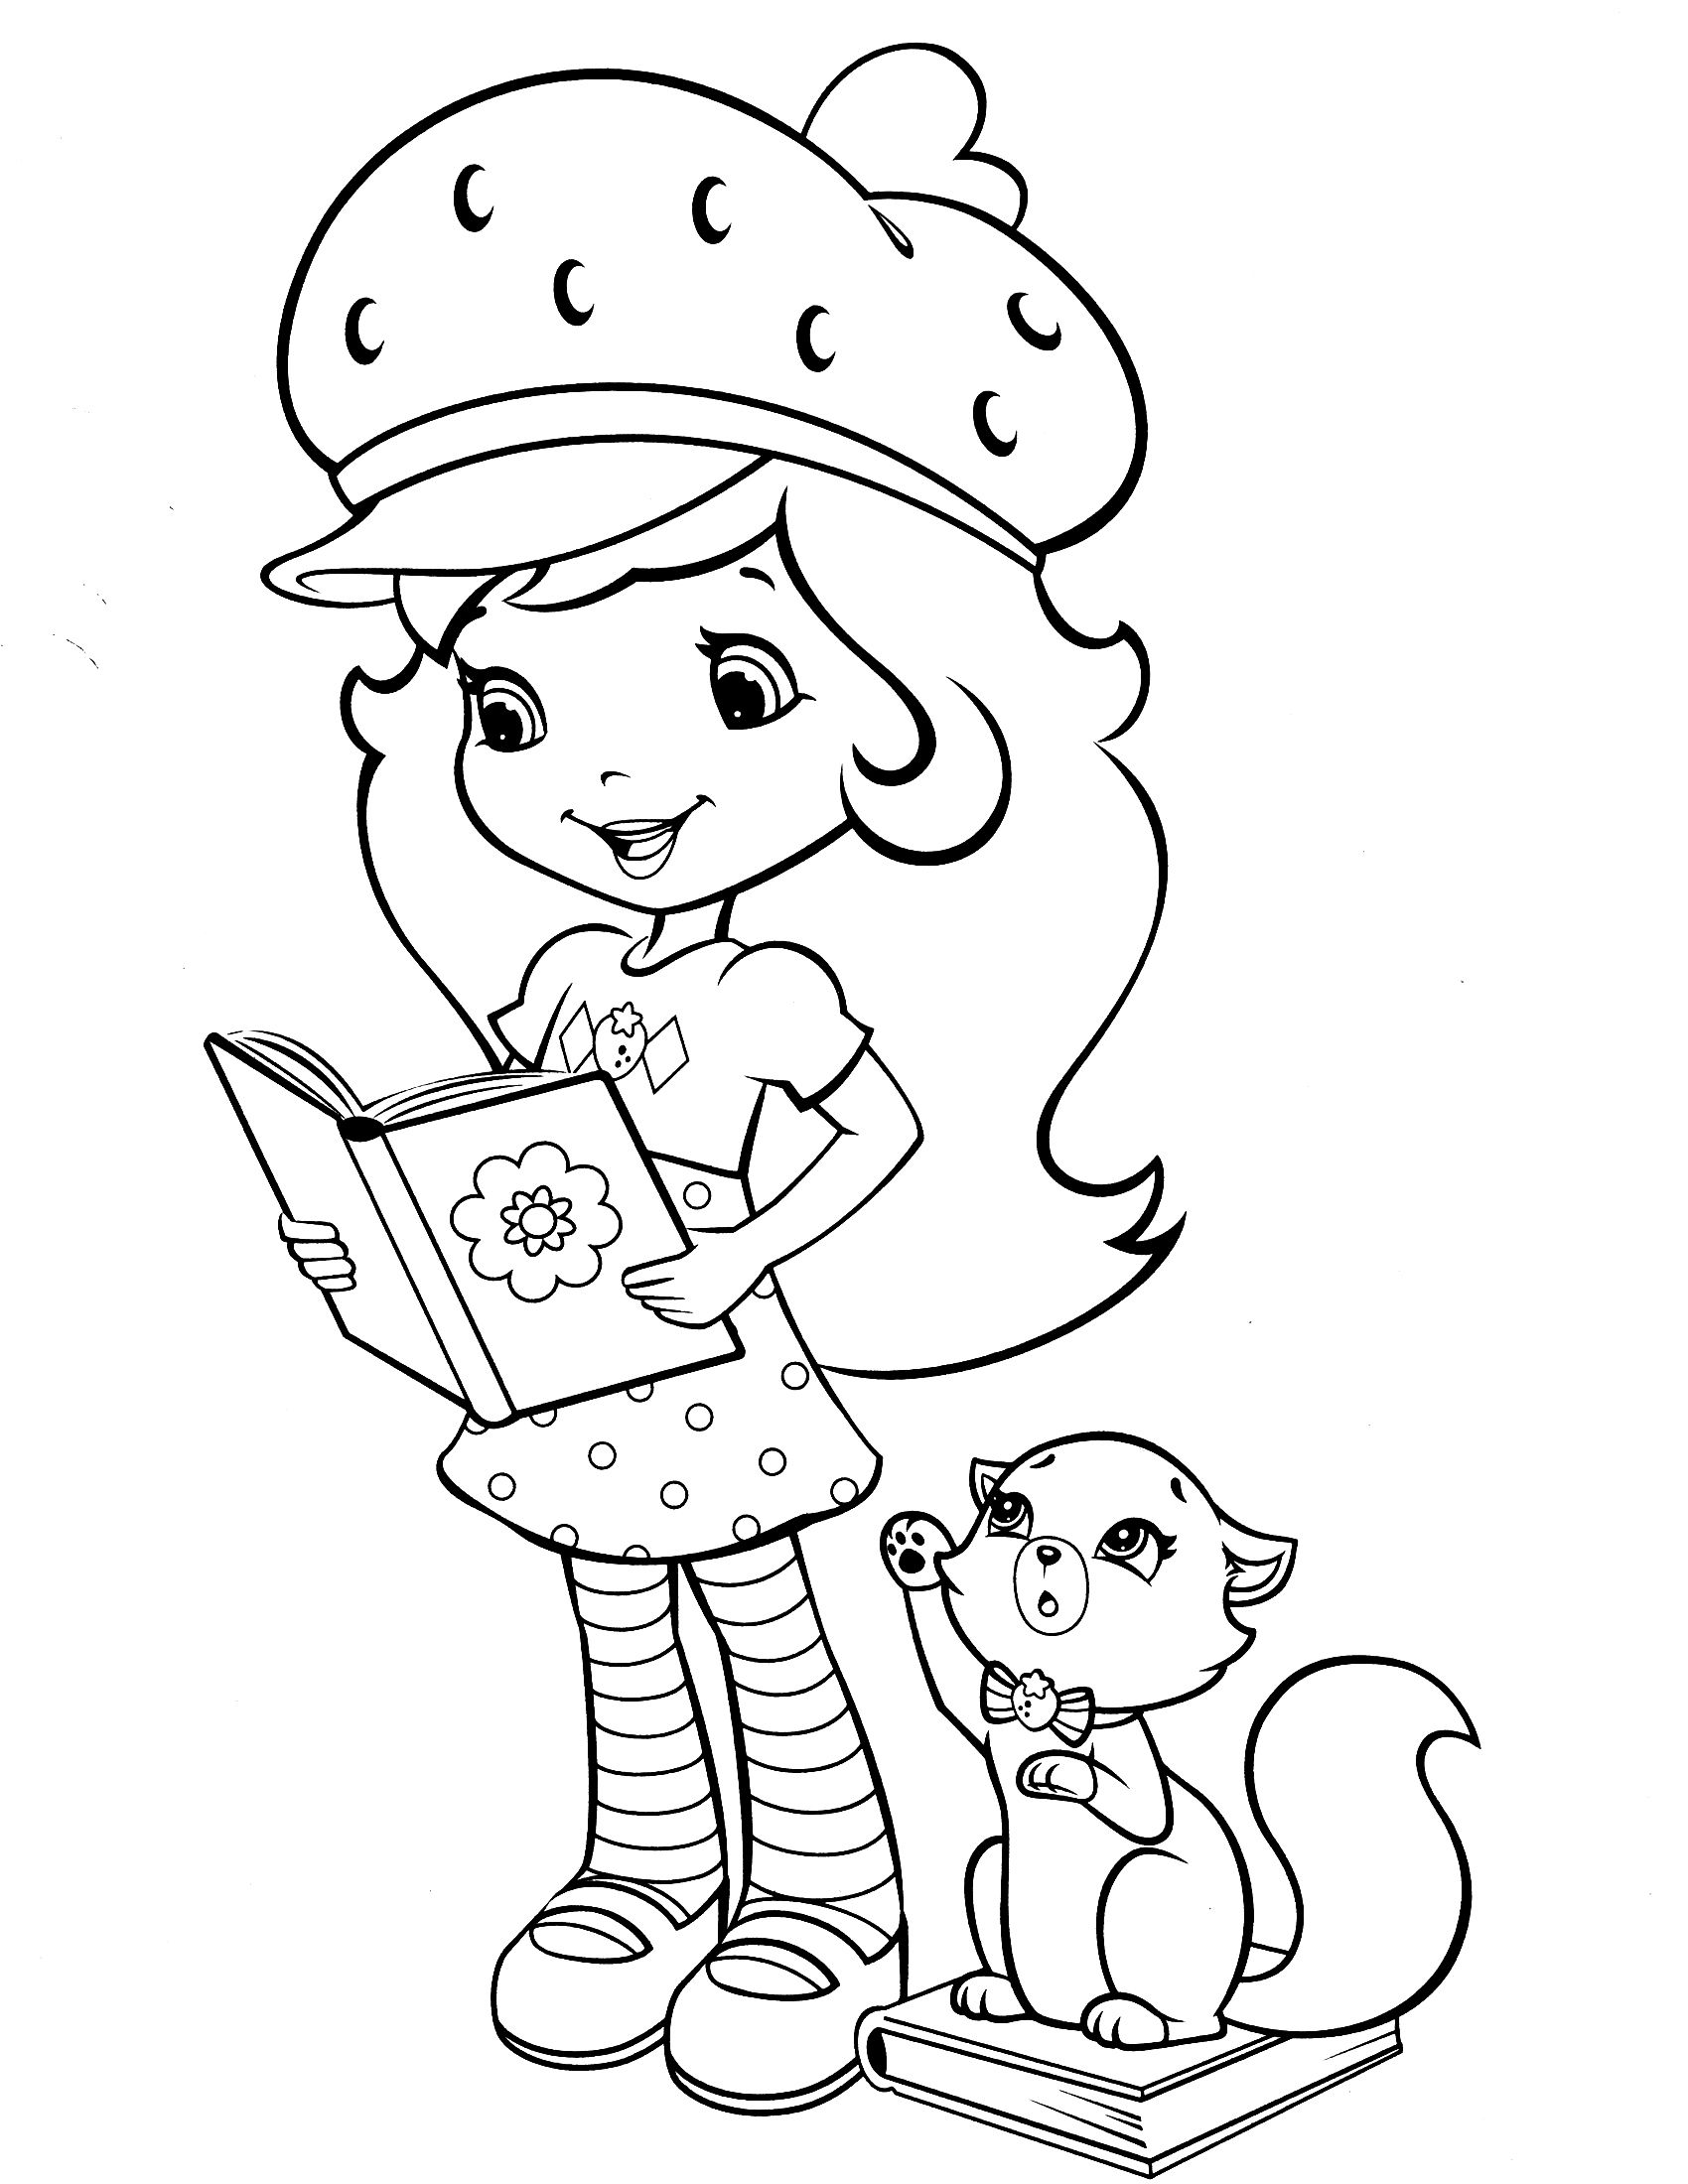 strawberry shortcake coloring page | Time toooo Relax | Pinterest ...